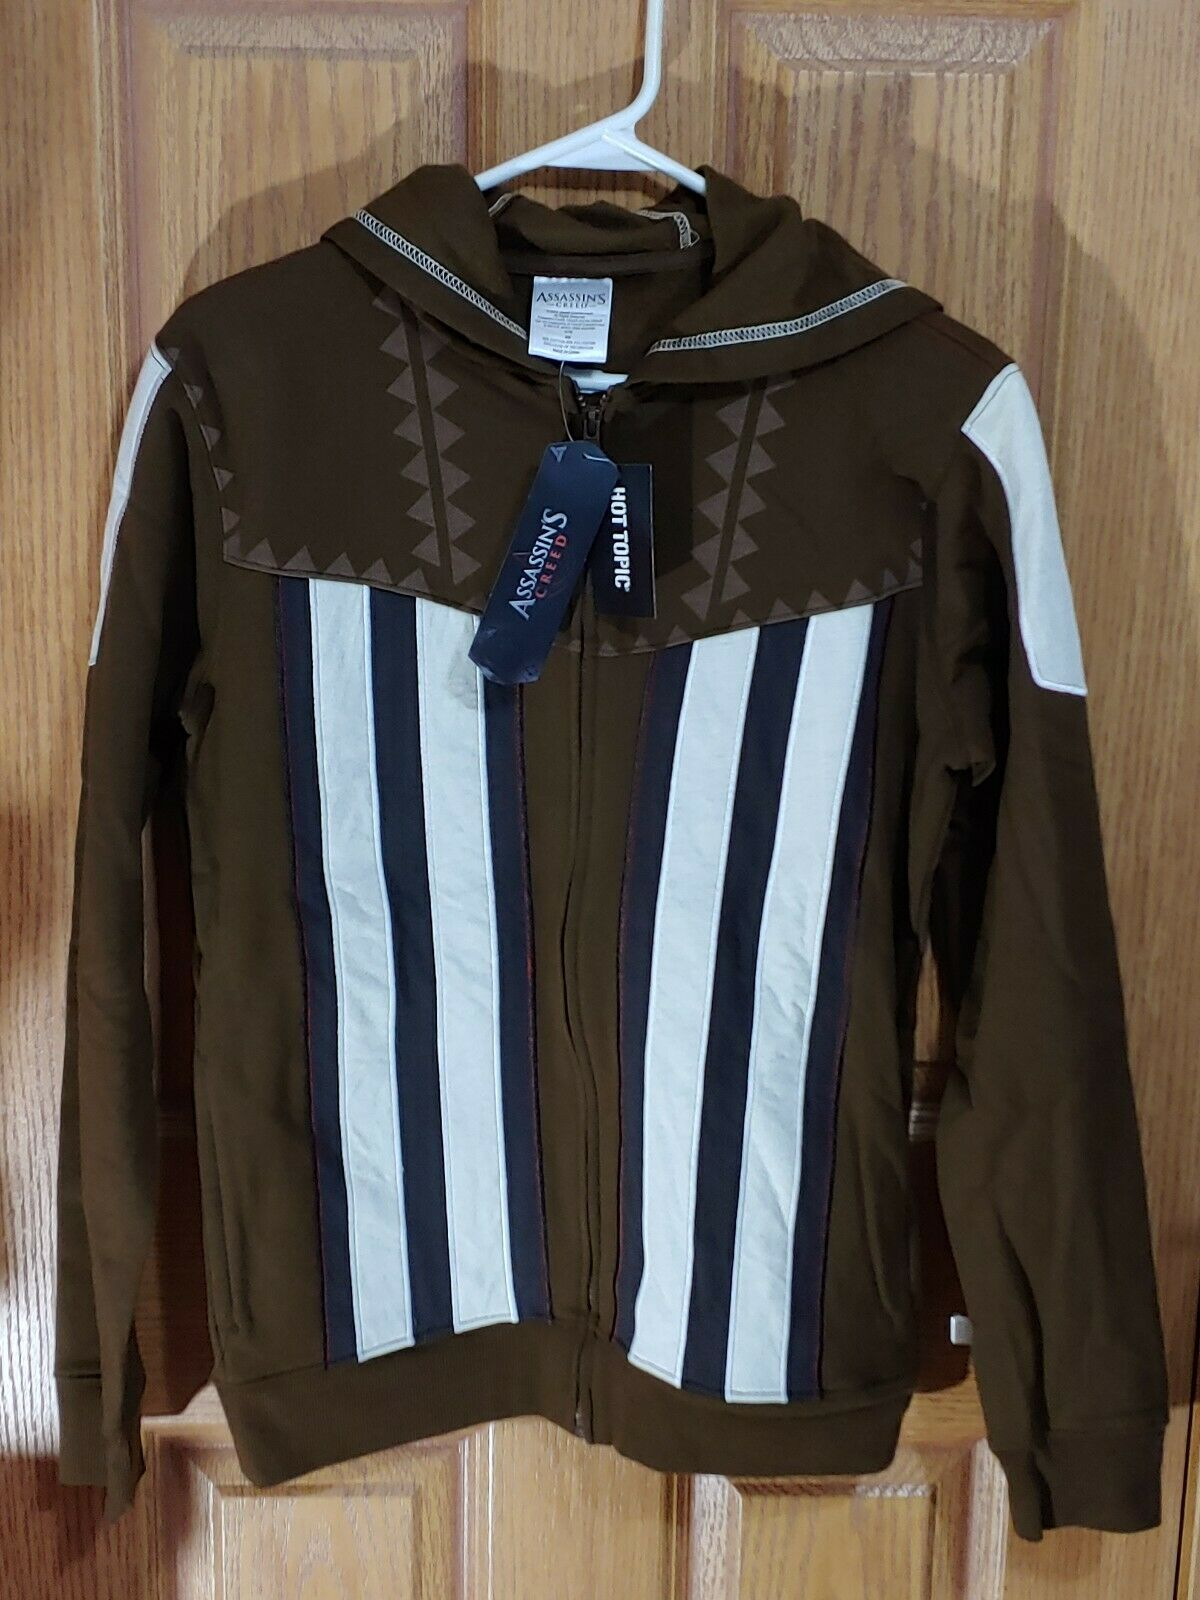 Hot Topic Mens Aguilar Assassins Creed Hoodie Brown and White. Size XL